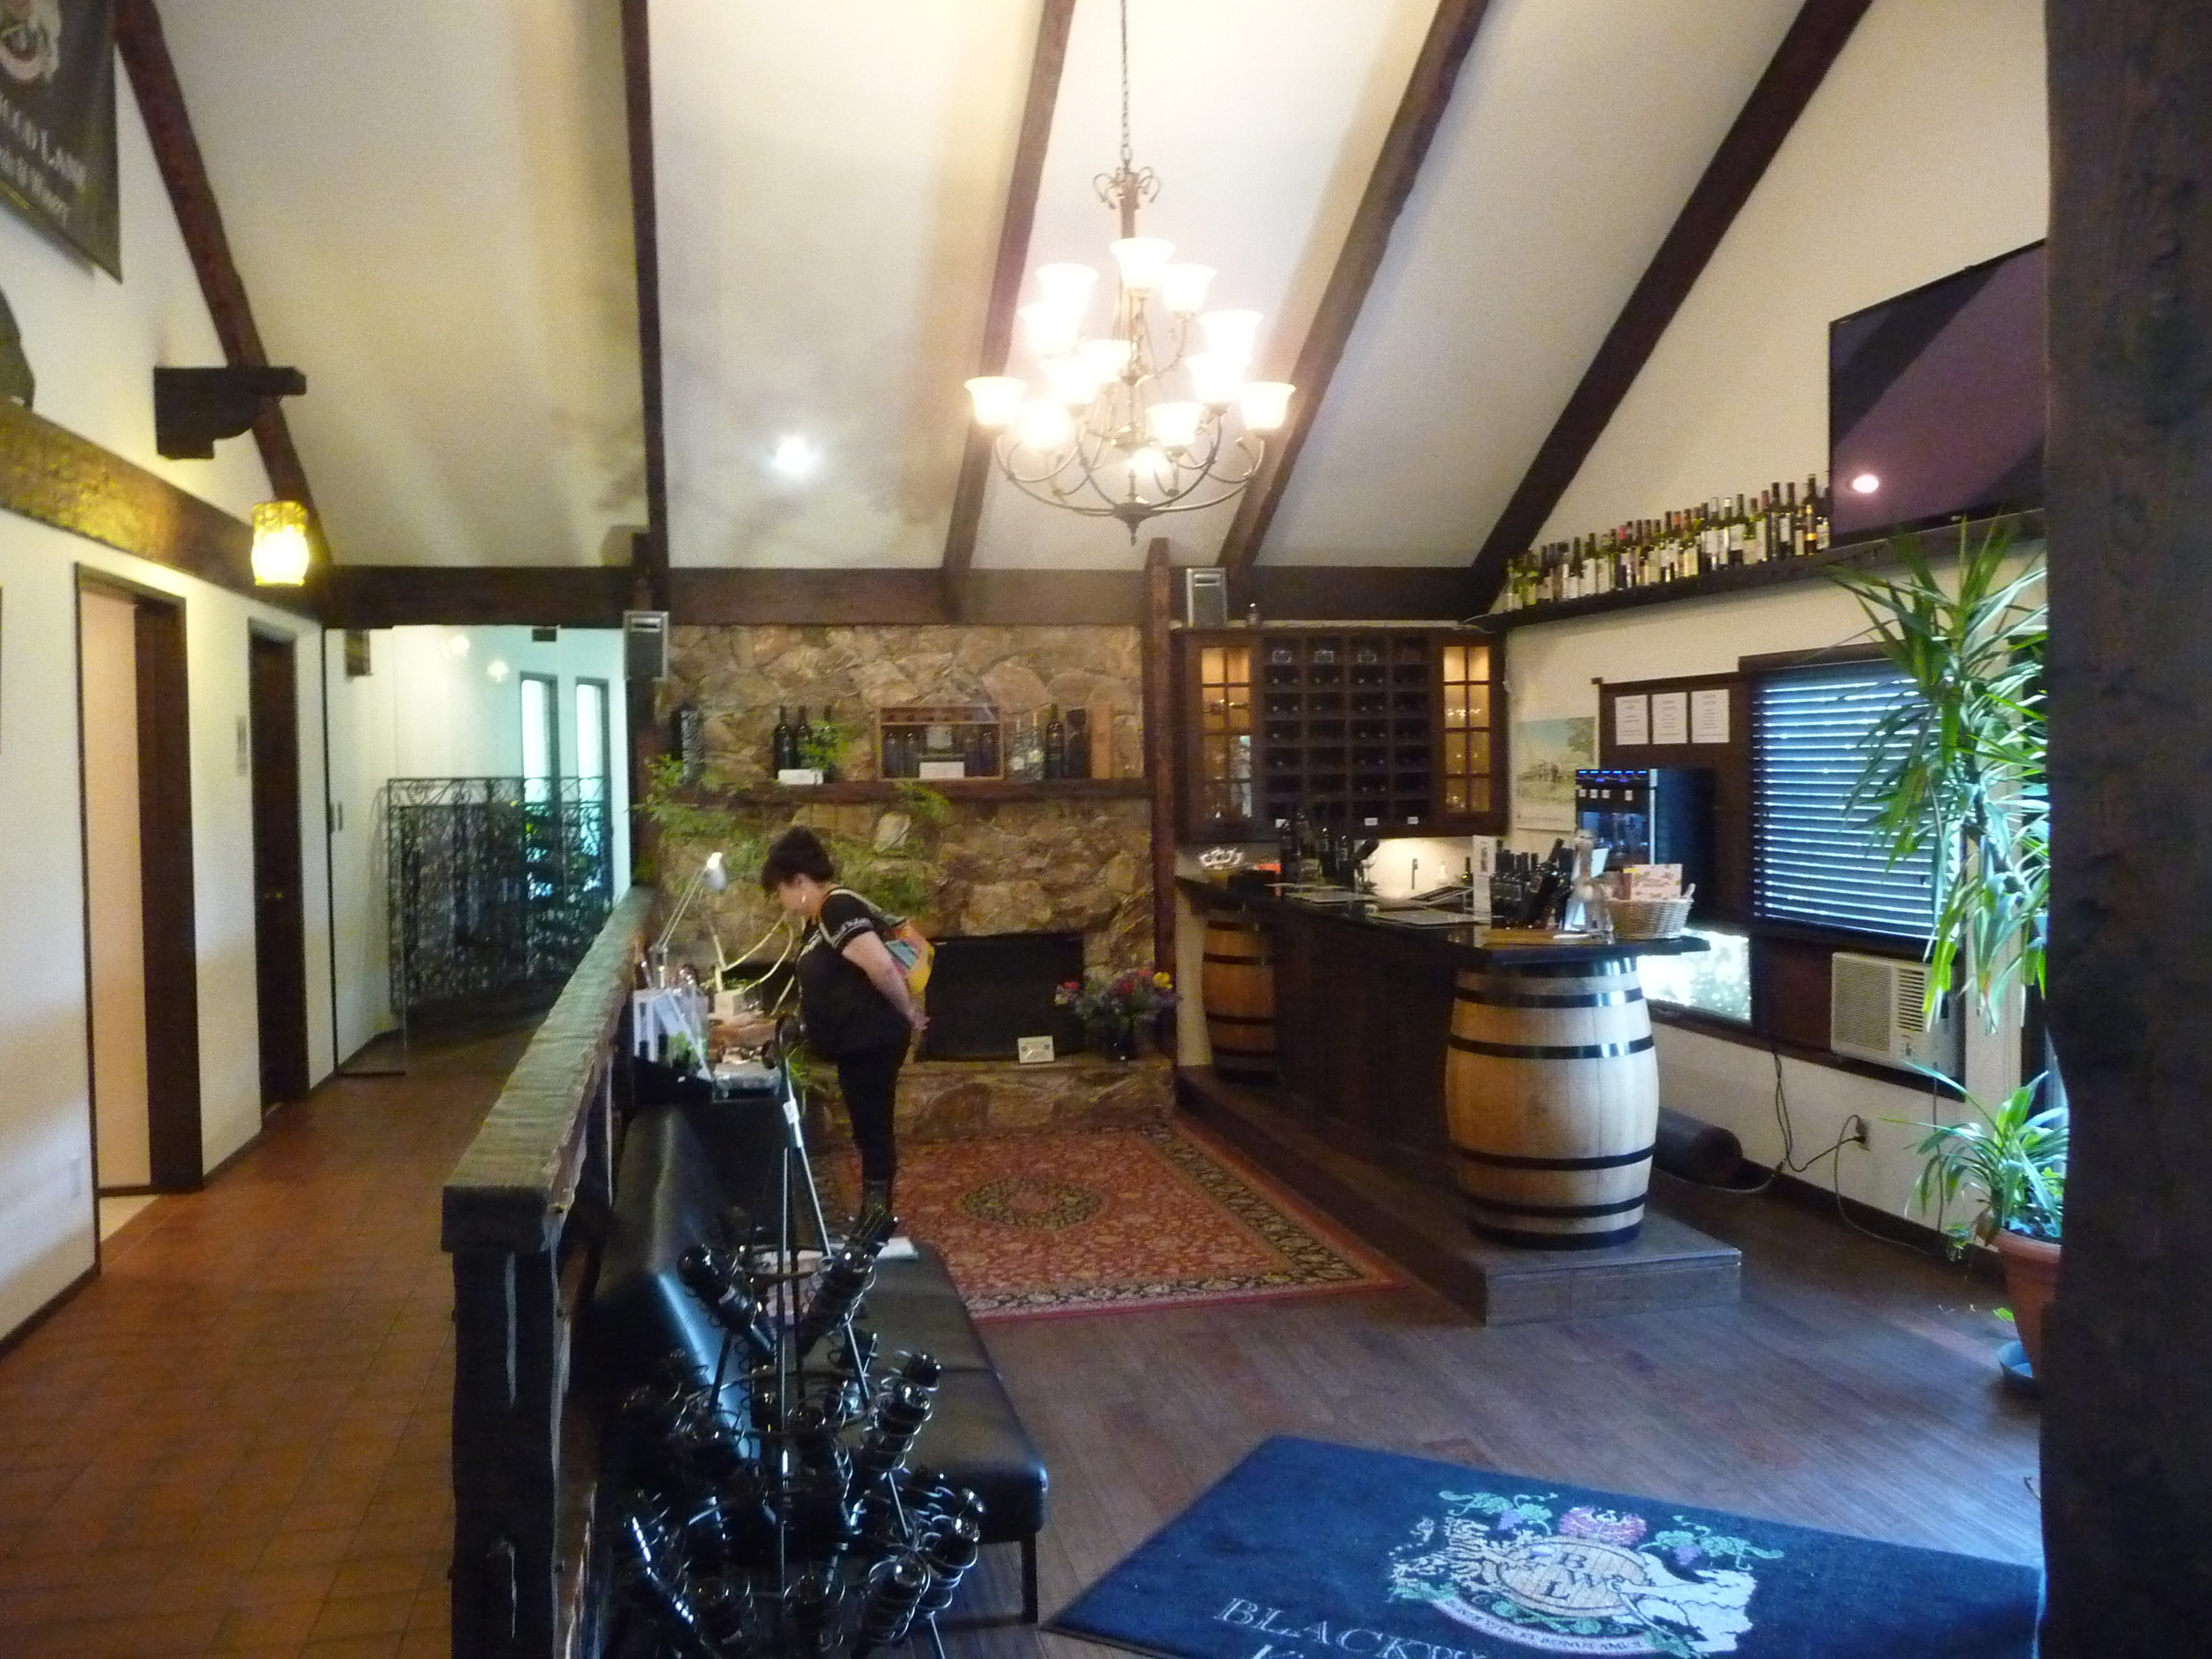 Tasting room of Blackwood Lane Winery in Langley, BC